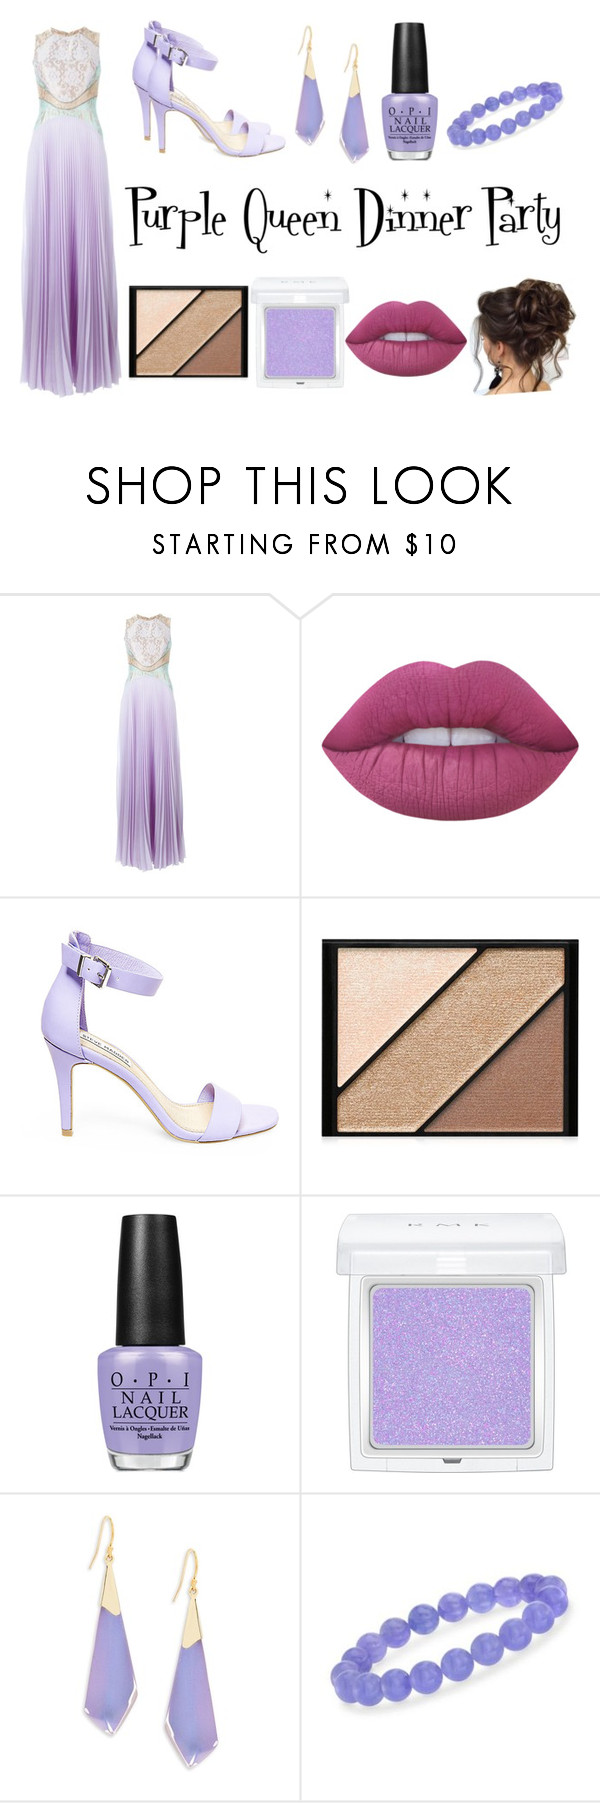 """Purple Queen Dinner Party"" by aalittles ❤ liked on Polyvore featuring Christopher Kane, Lime Crime, Steve Madden, Elizabeth Arden, OPI, RMK, Alexis Bittar and Ross-Simons"